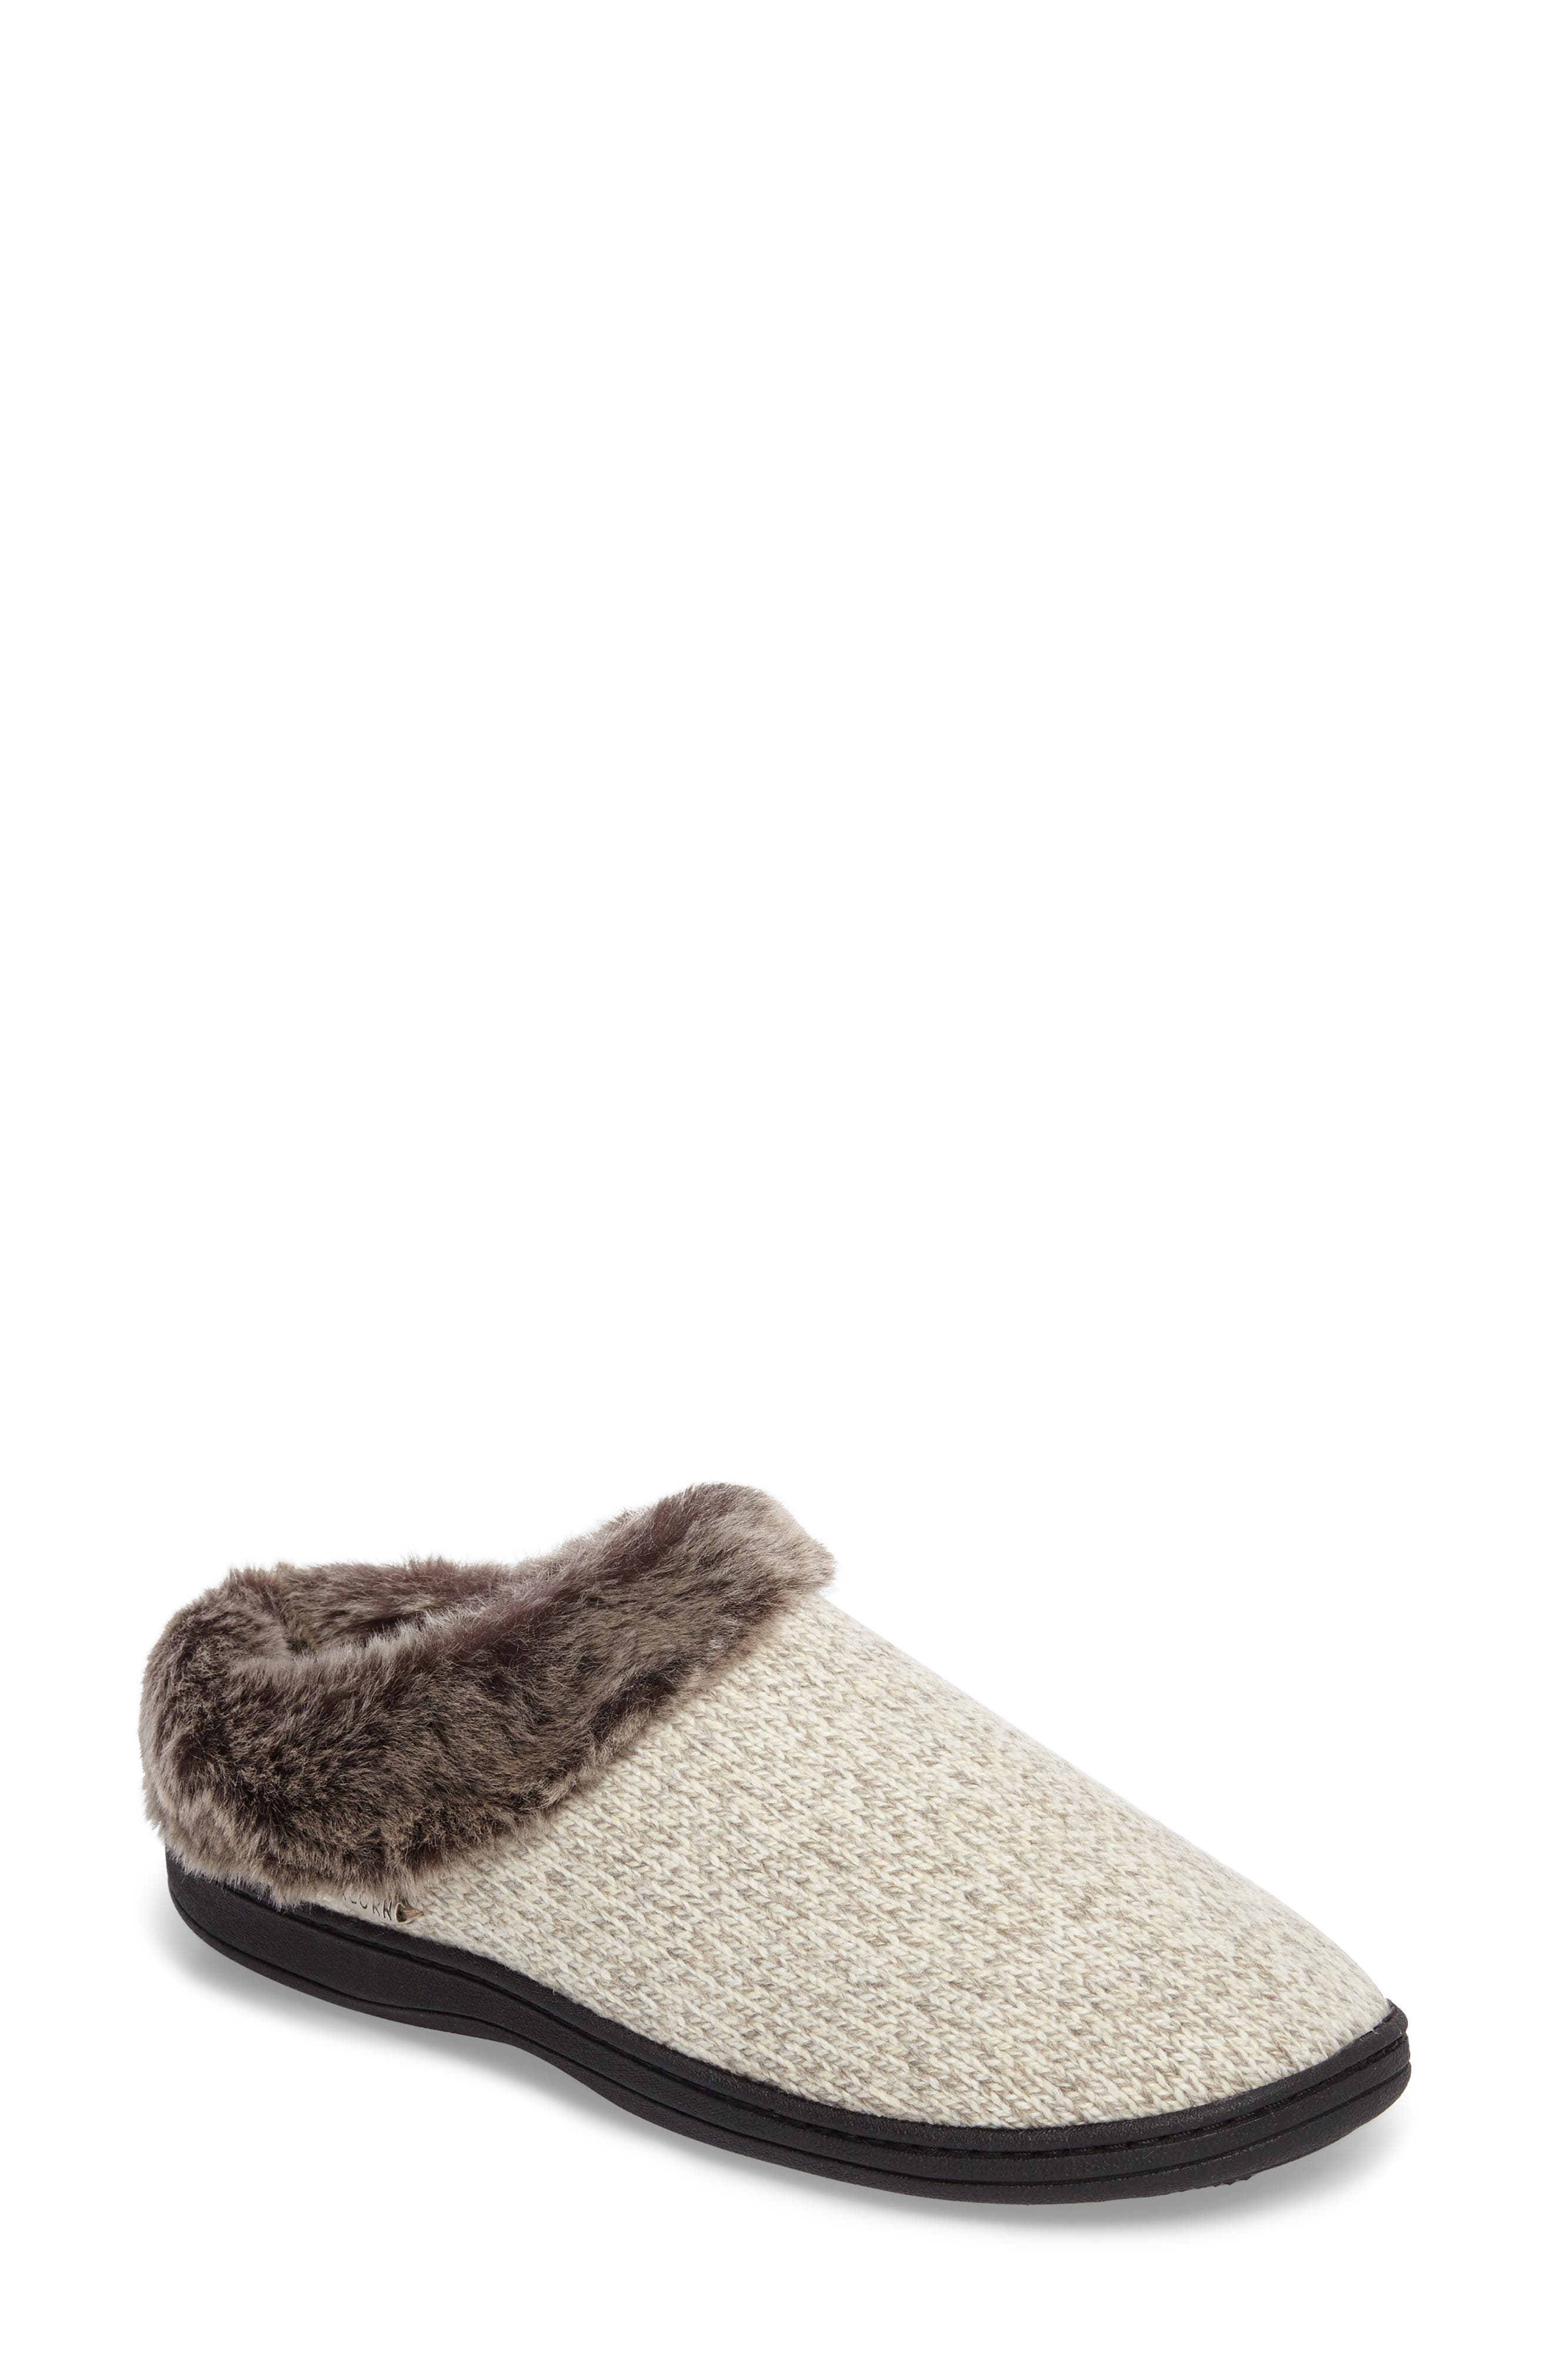 Chinchilla Faux Fur Slipper,                         Main,                         color, CHARCOAL HEATHER